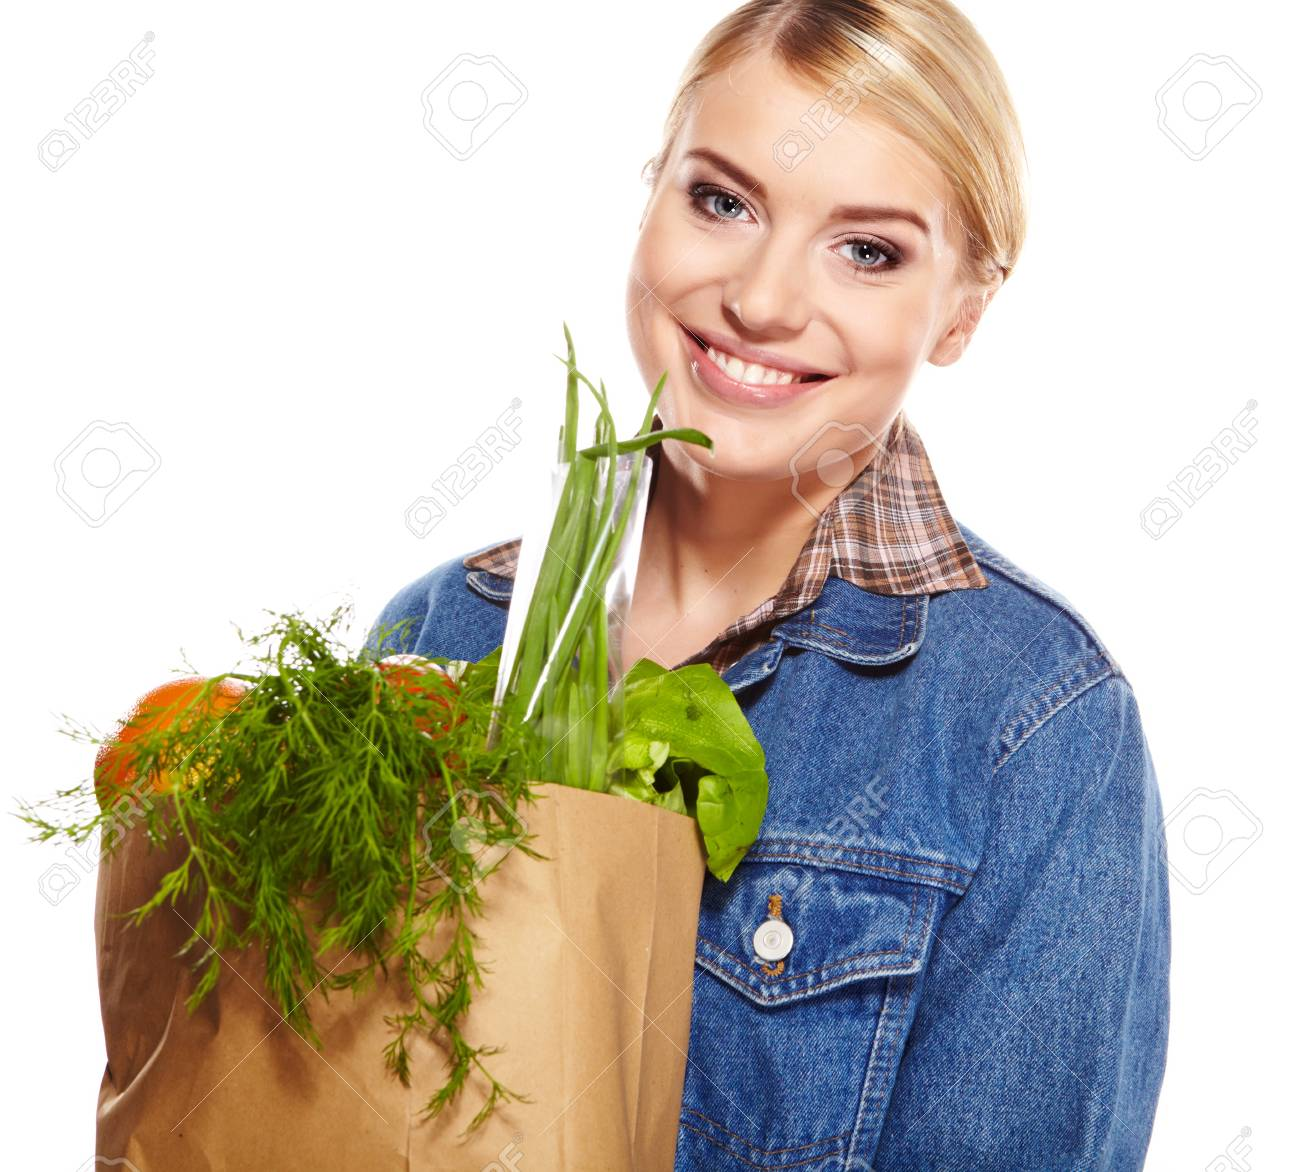 Portrait of happy young woman holding a shopping bag full of groceries on white background Stock Photo - 17564552